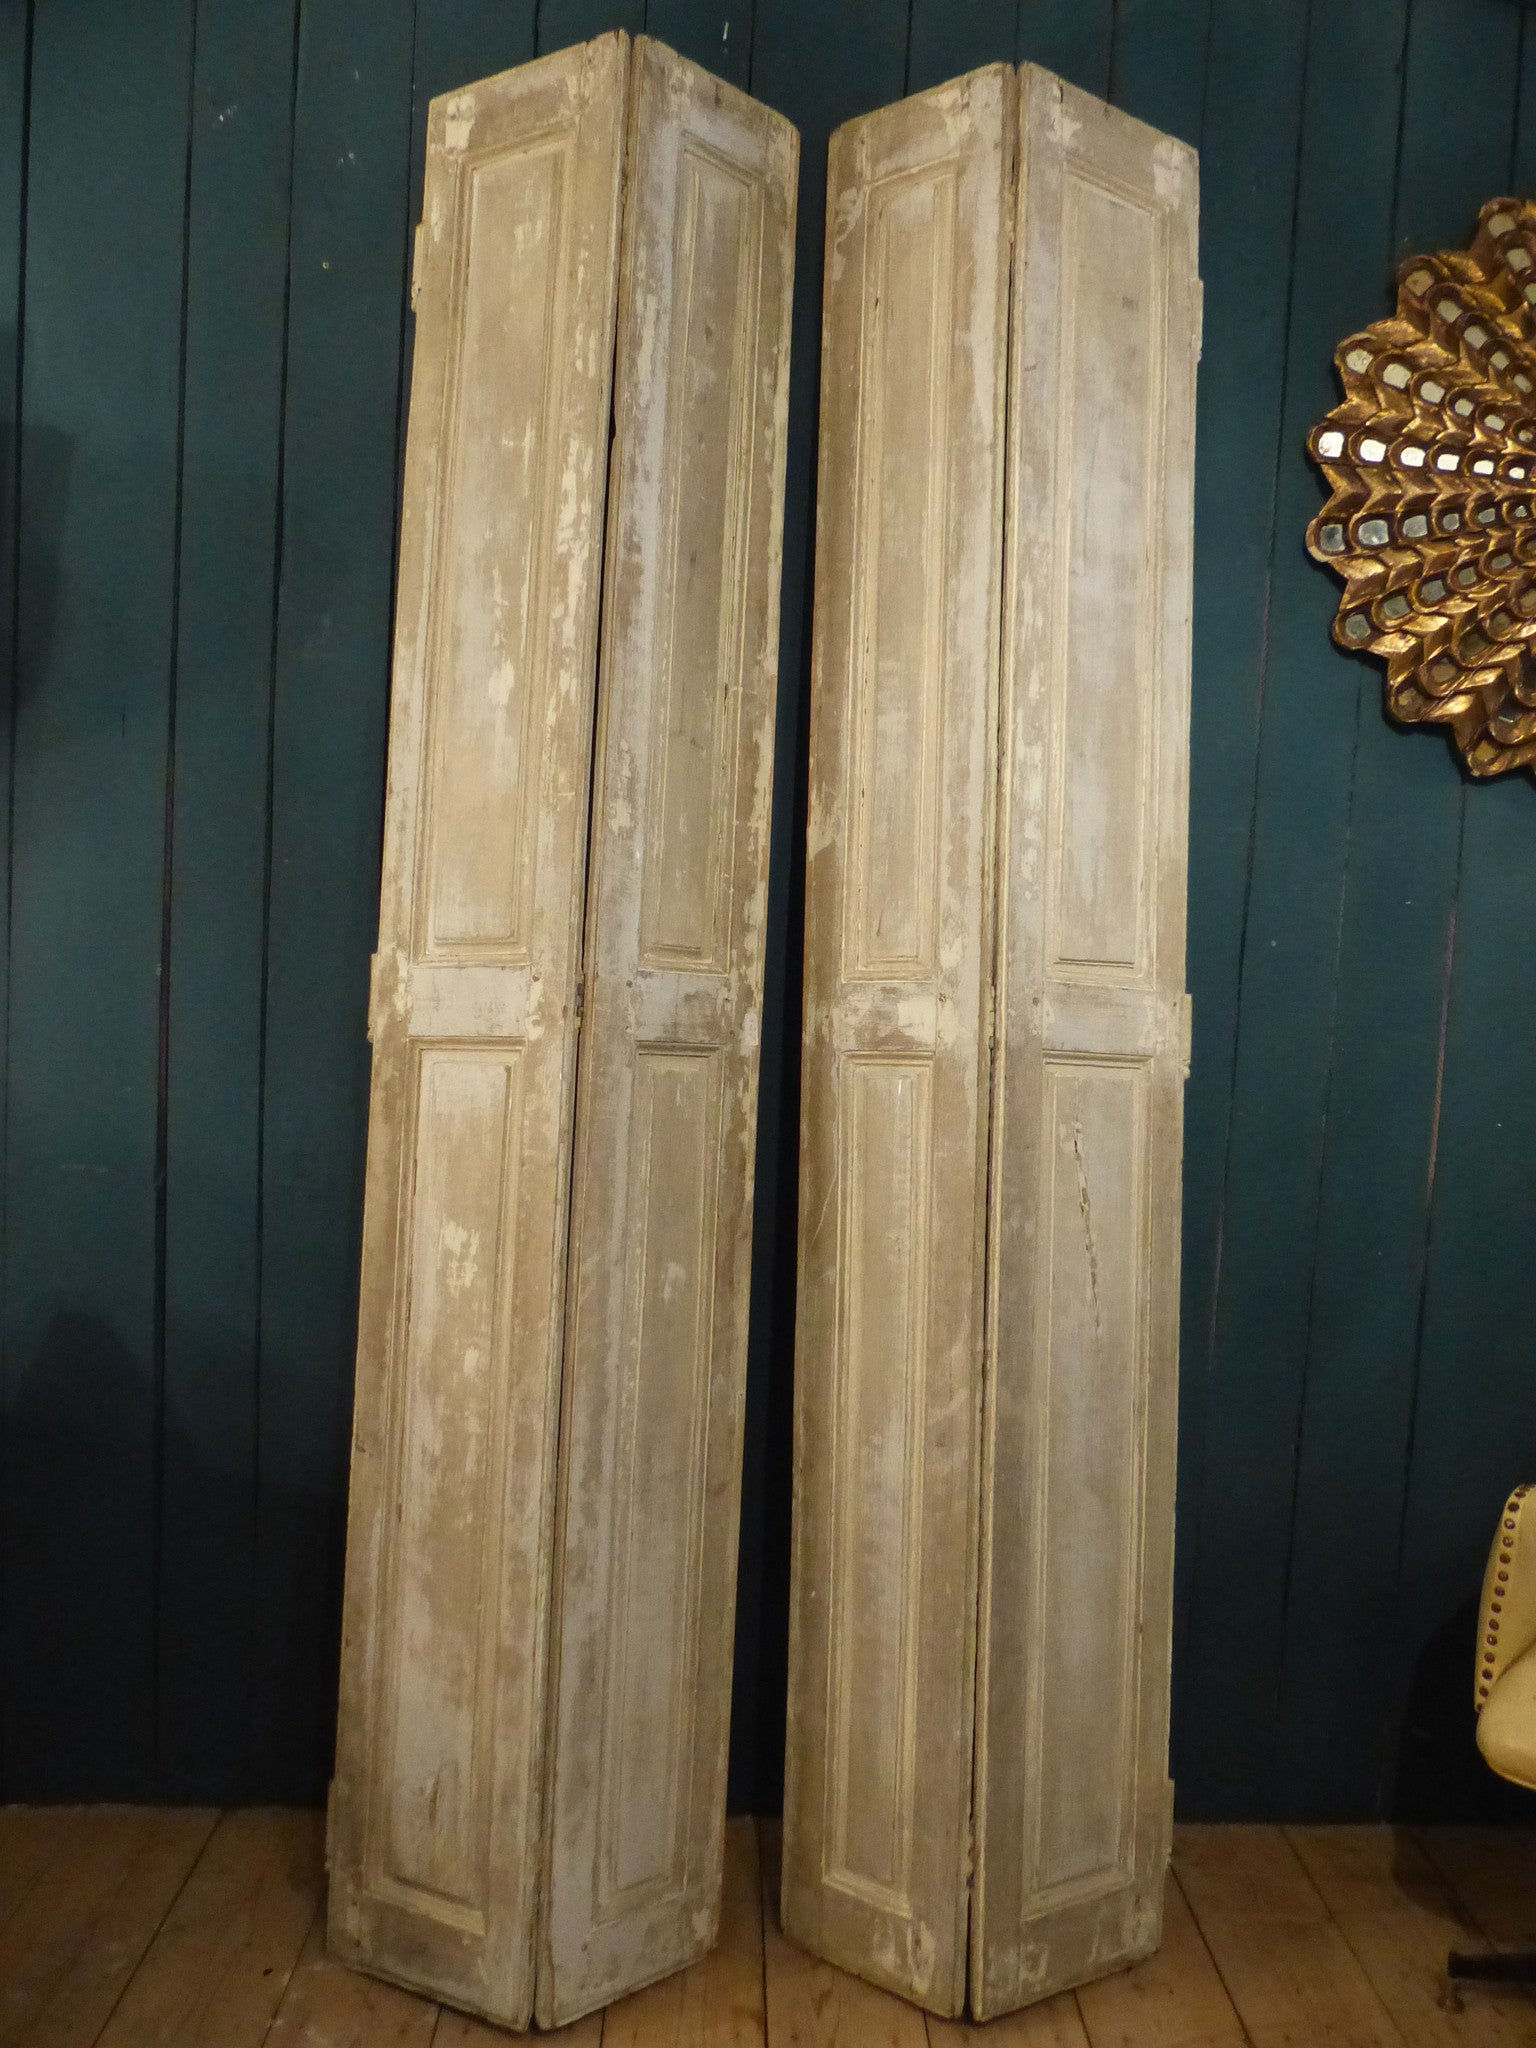 Pair of 19th century shutters with white patina